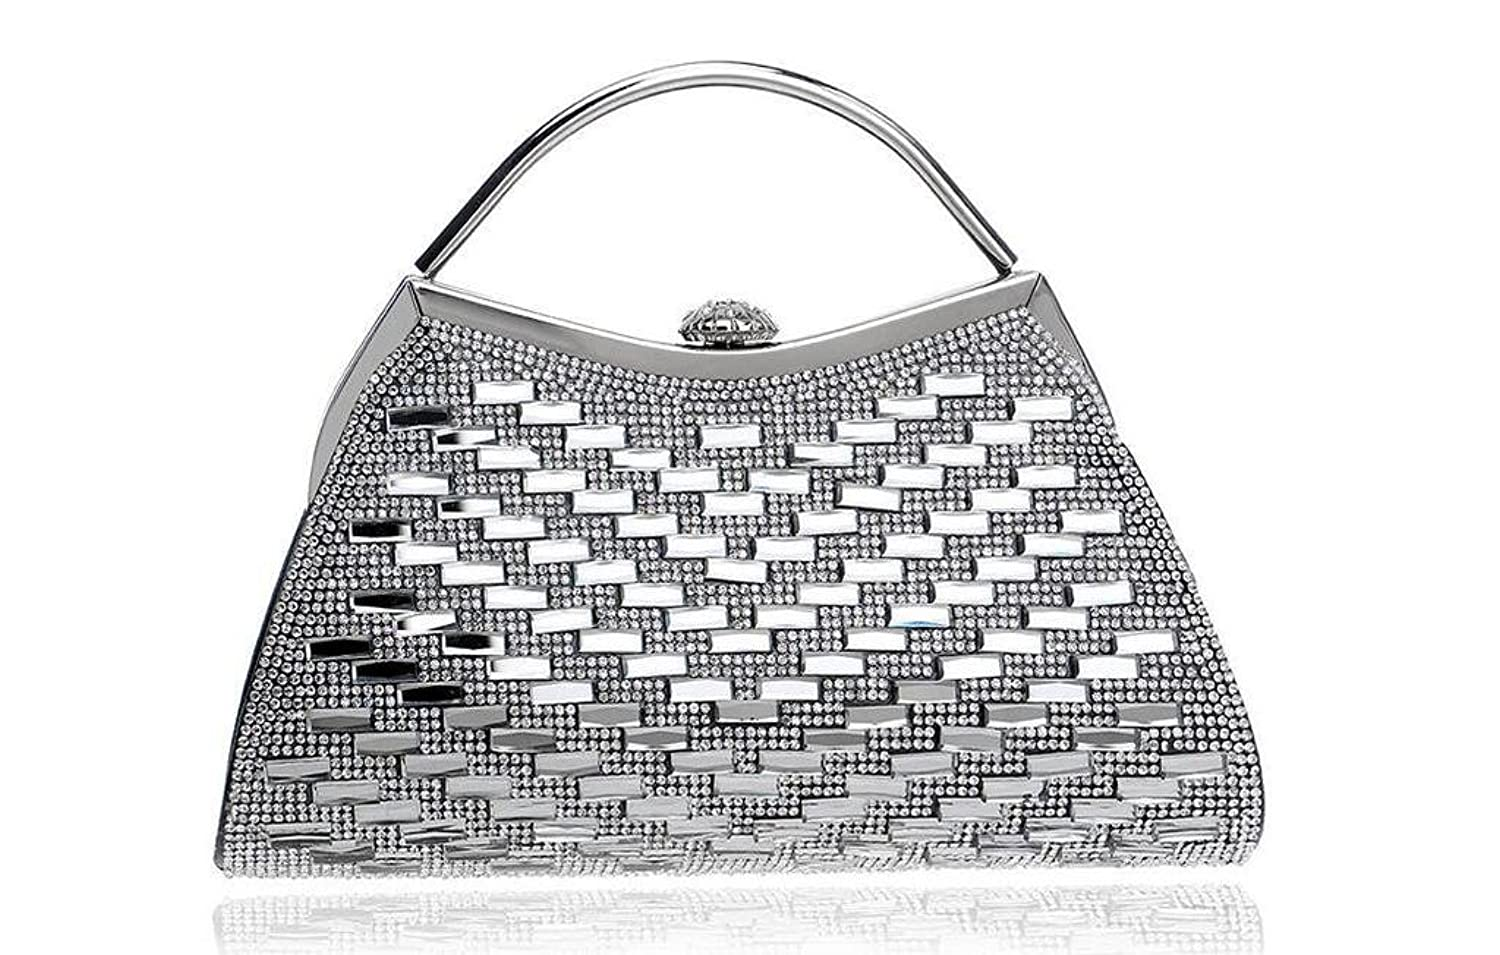 GINSIO Women's Rhinestone Pearl New Fashion Simple Shoulder-handbags Evening-handbags